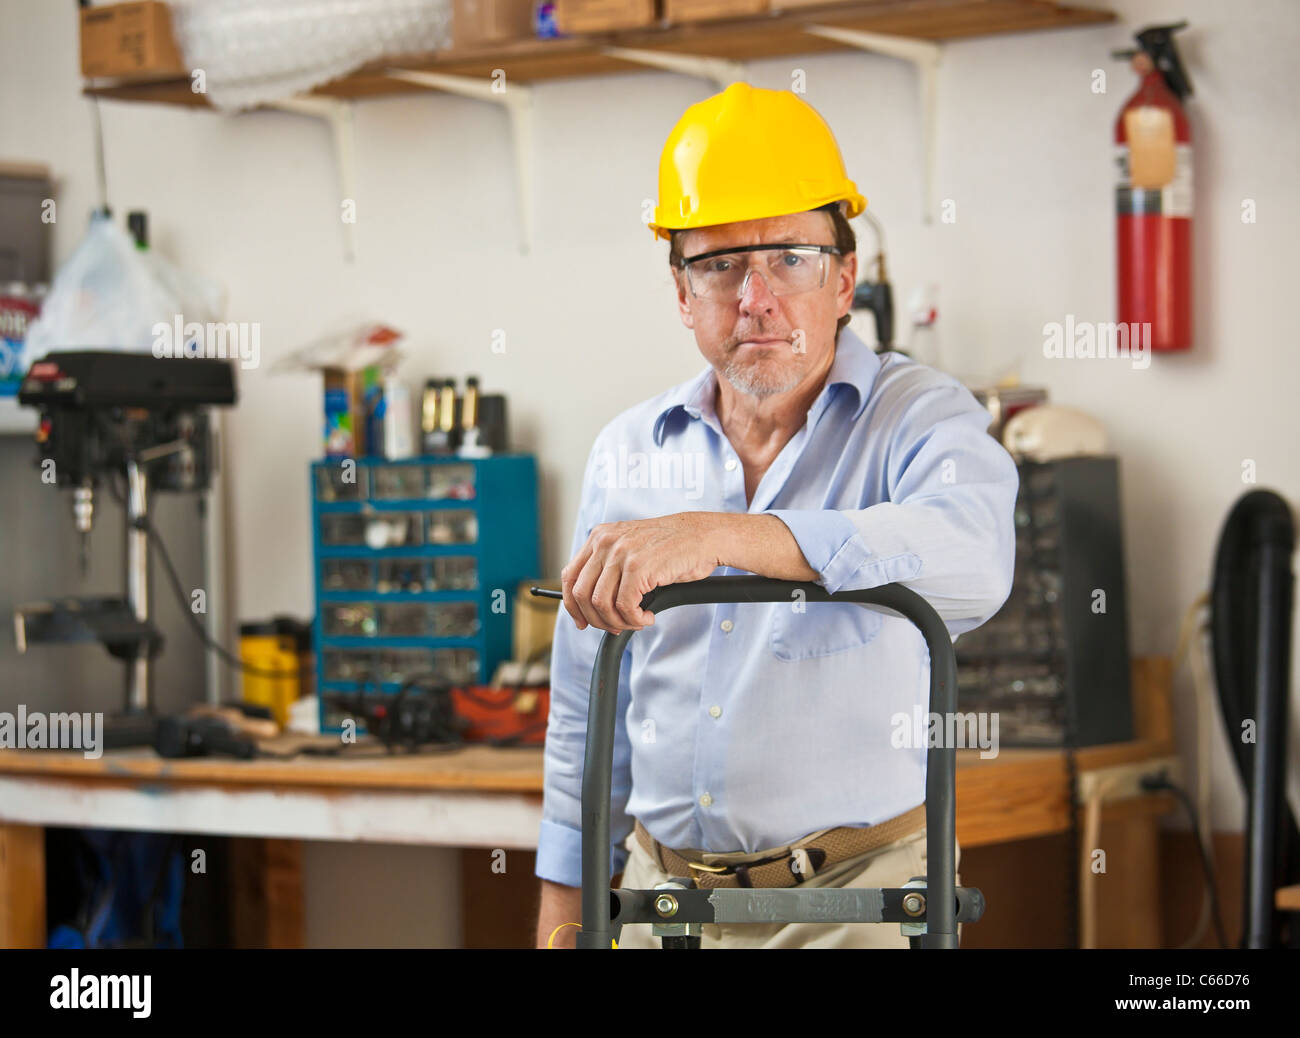 d8926f32894 man wearing yellow hard hat in work shop with hand truck Stock Photo ...